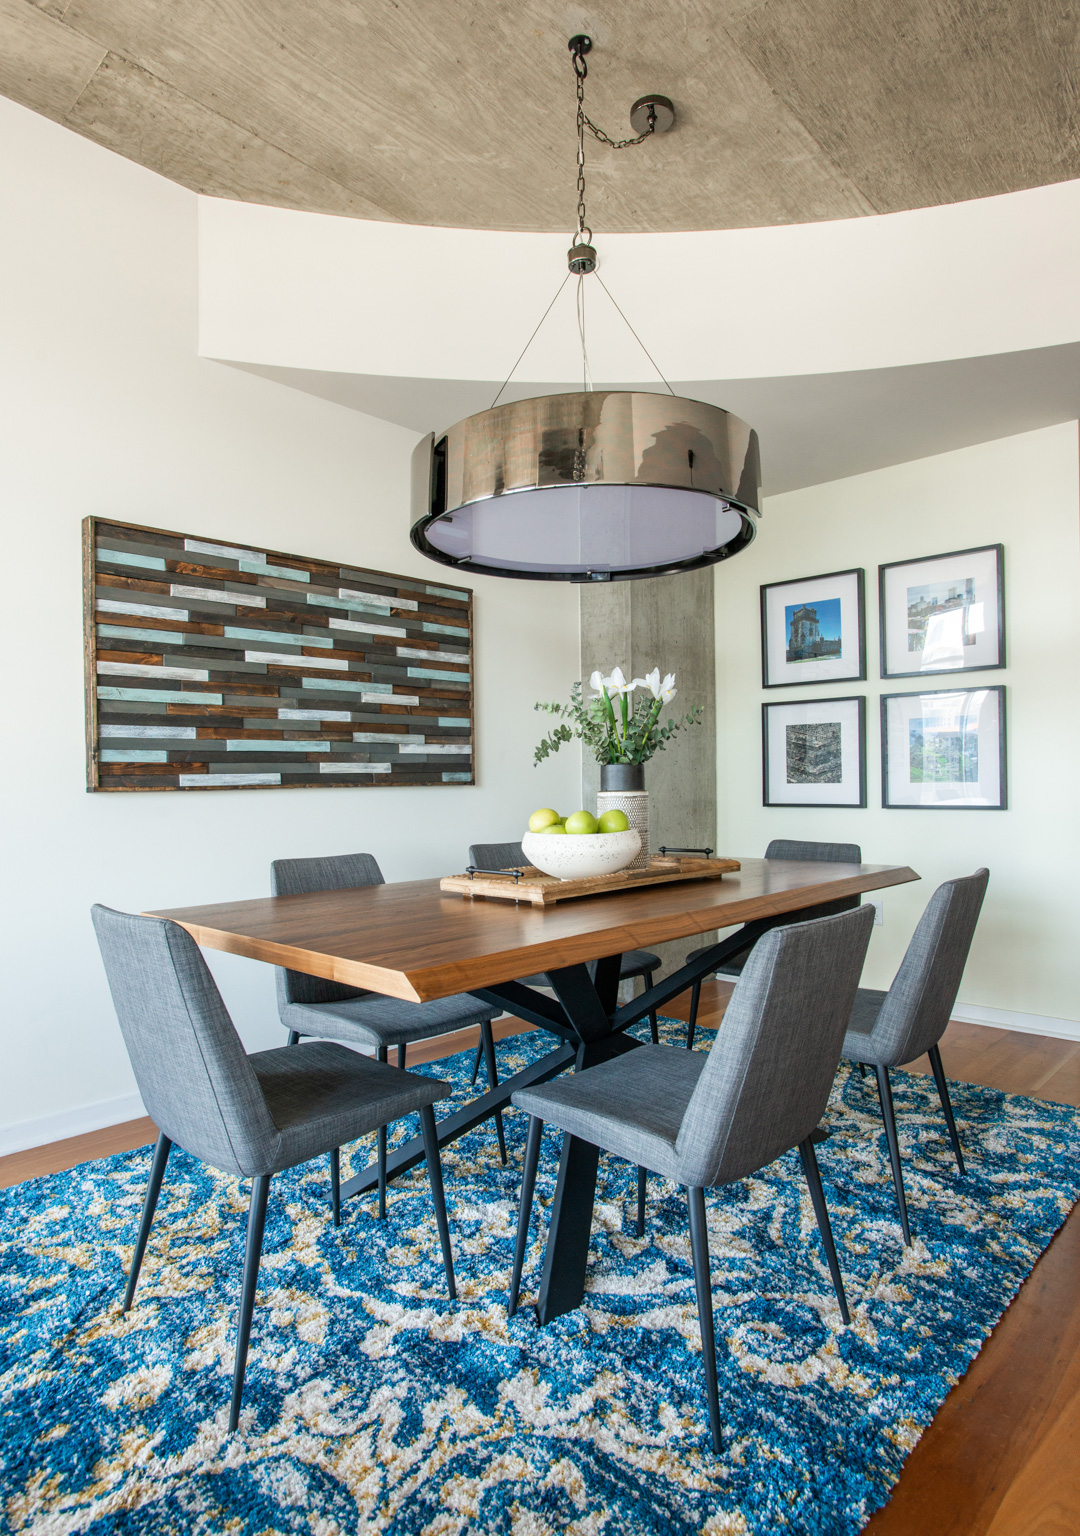 Glass House Condo dining room with table chairs and modern light fixture